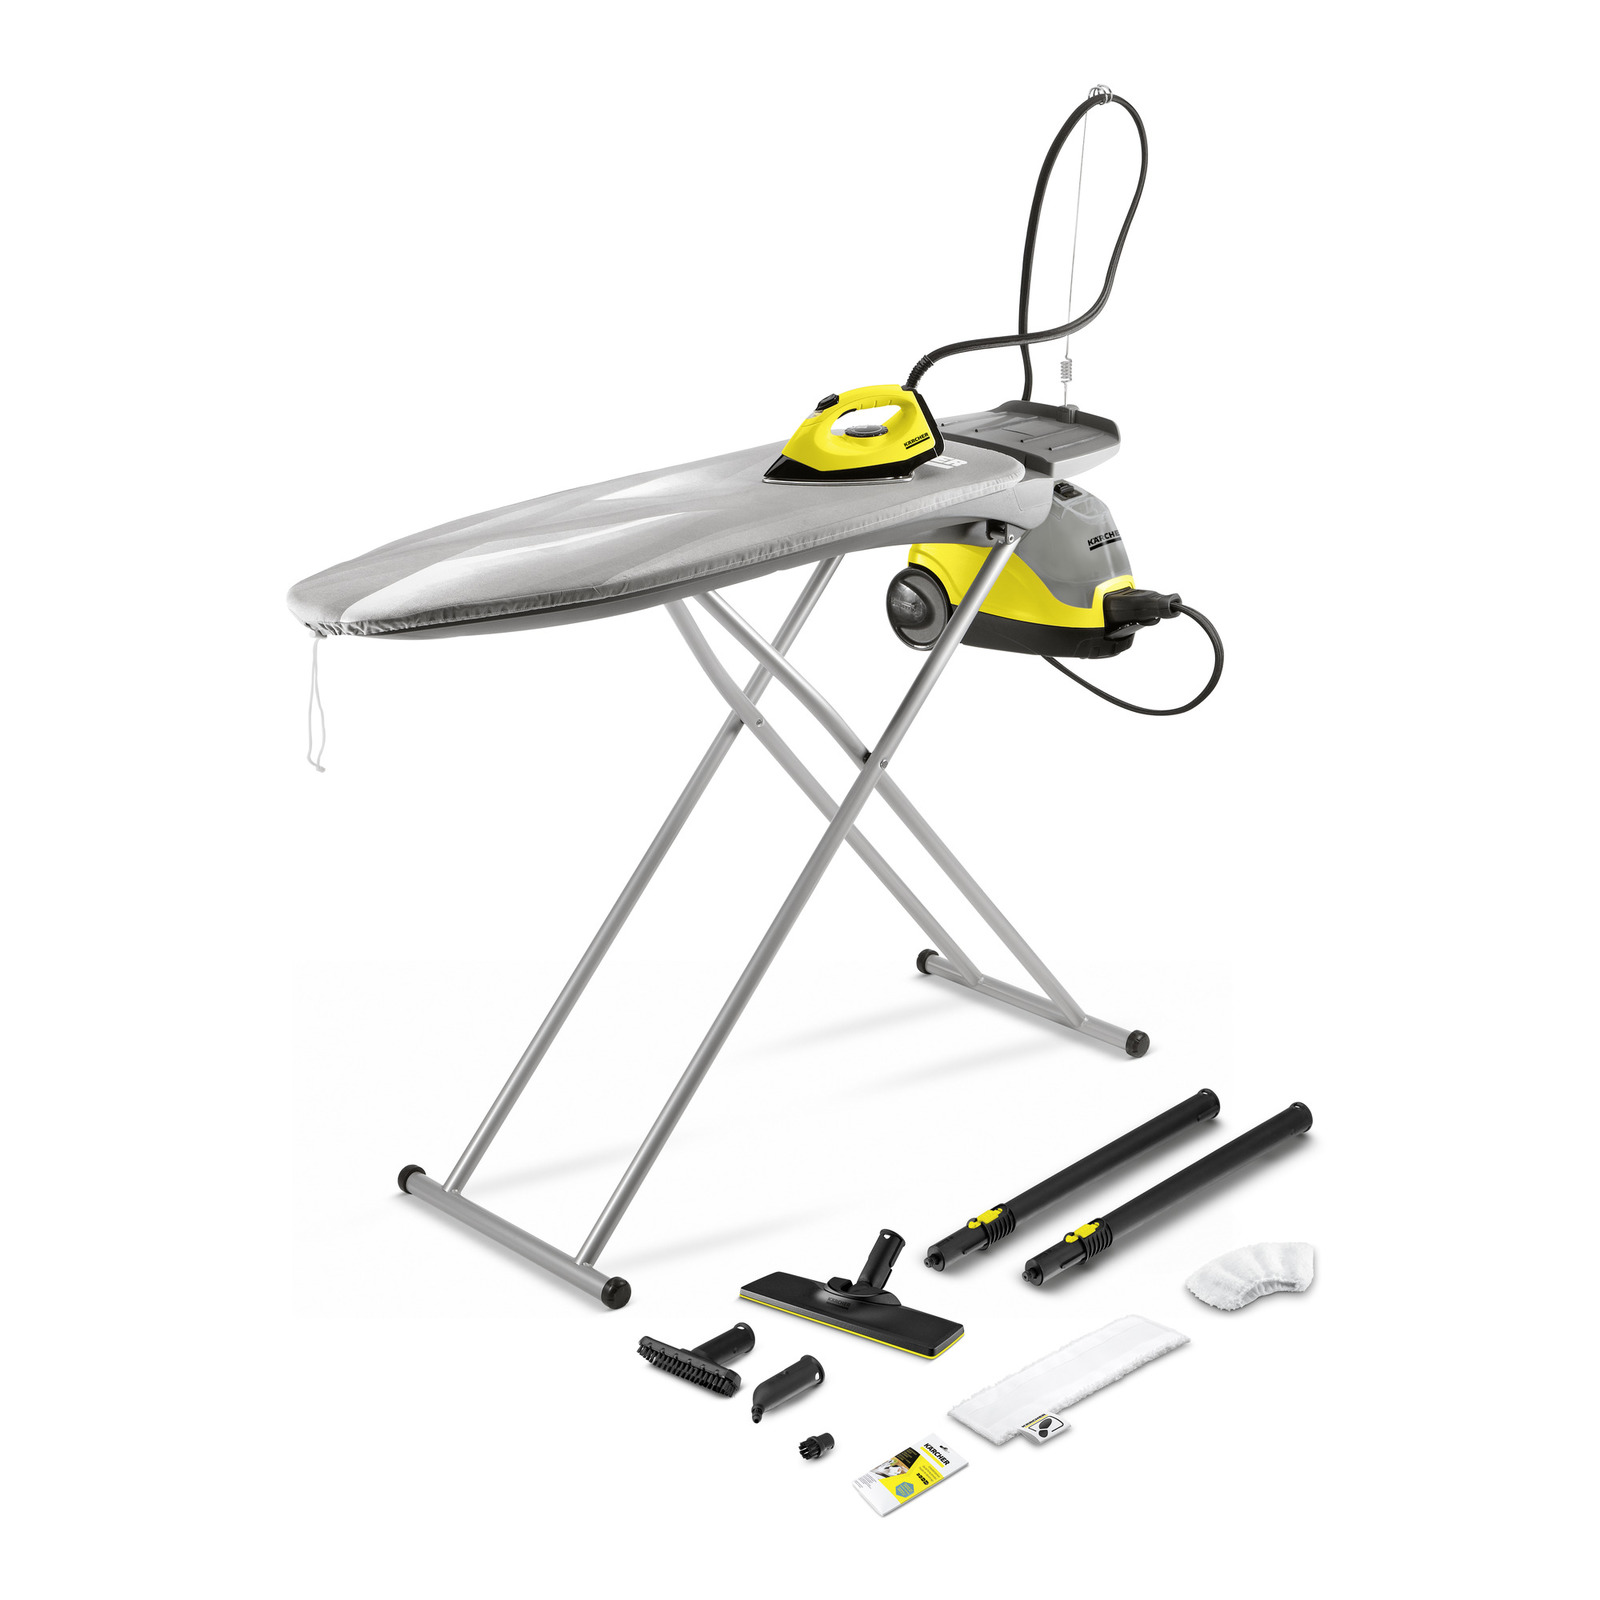 KARCHER SI 4 EASYFIX IRON KIT (1.512-454.0)